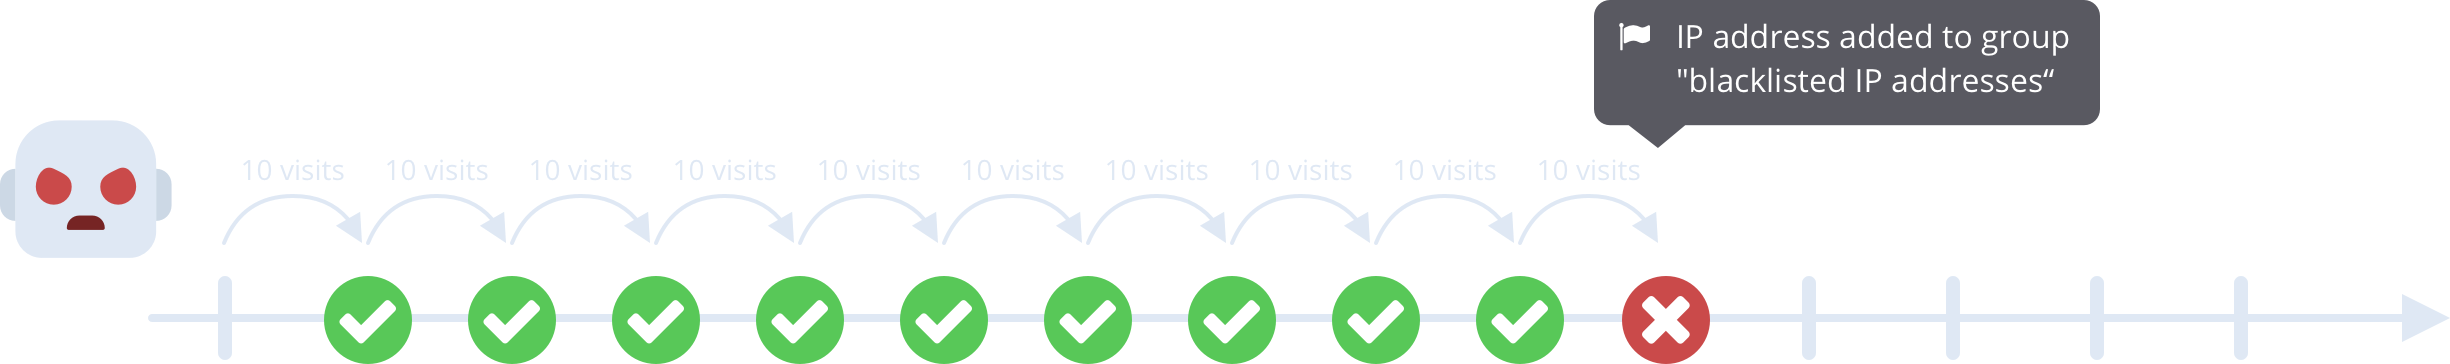 a bot visits 100 times in less than 2 minutes, and on the 100th visit they are denied and their IP address is added to the blacklisted IP addresses visitor group